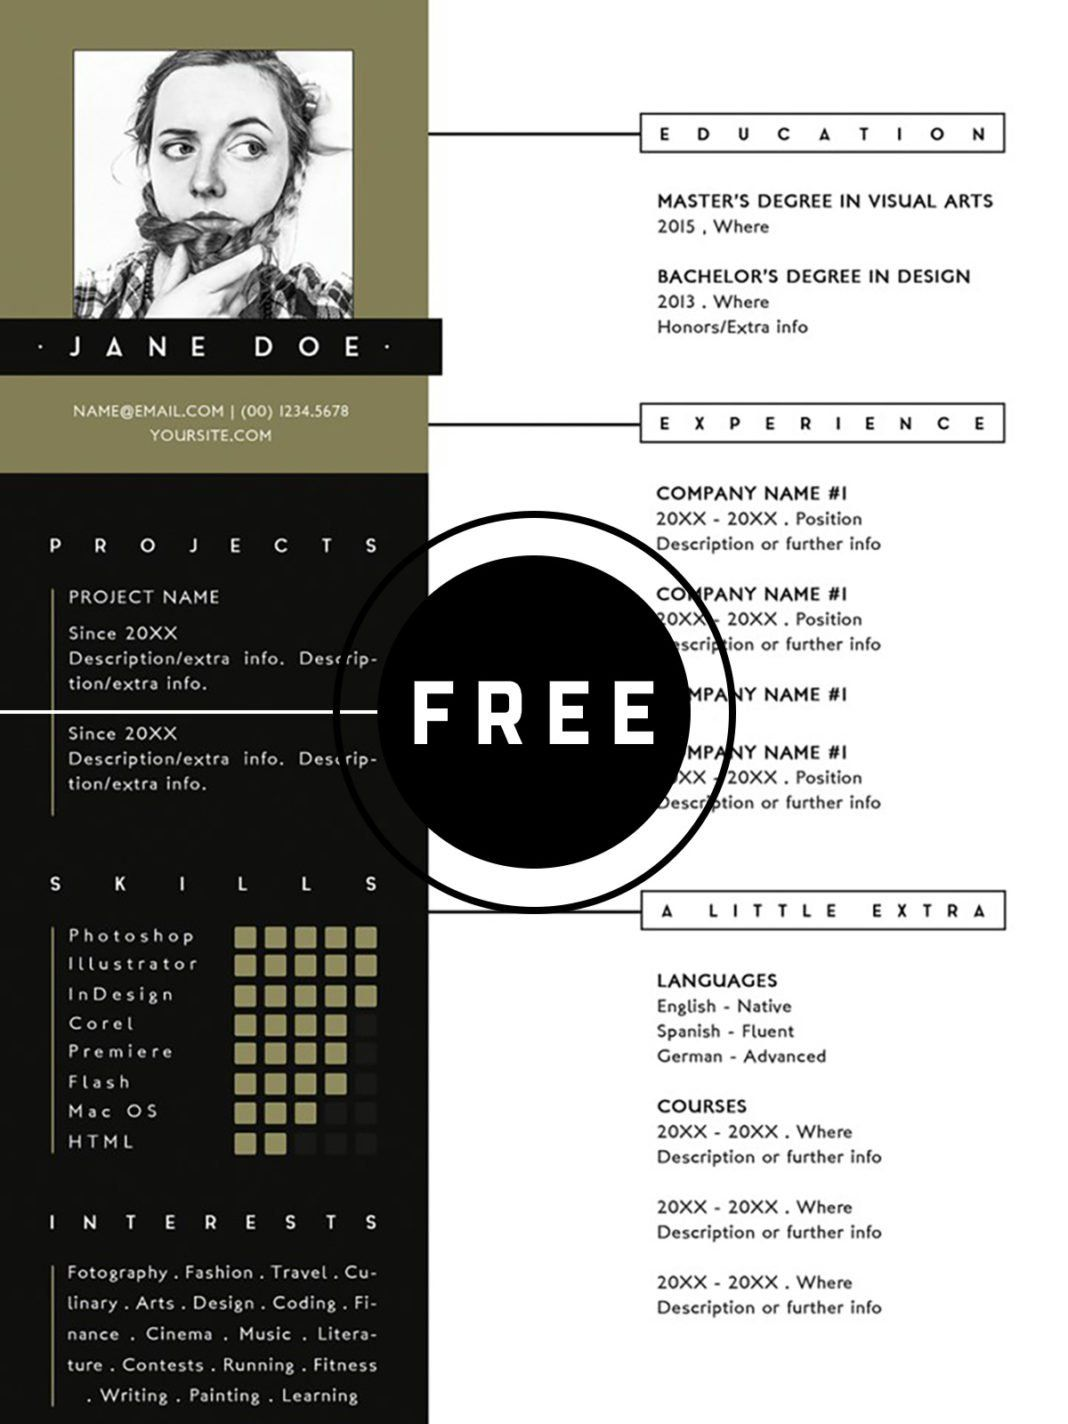 Free PSD Resume Infographic resume template, Best resume